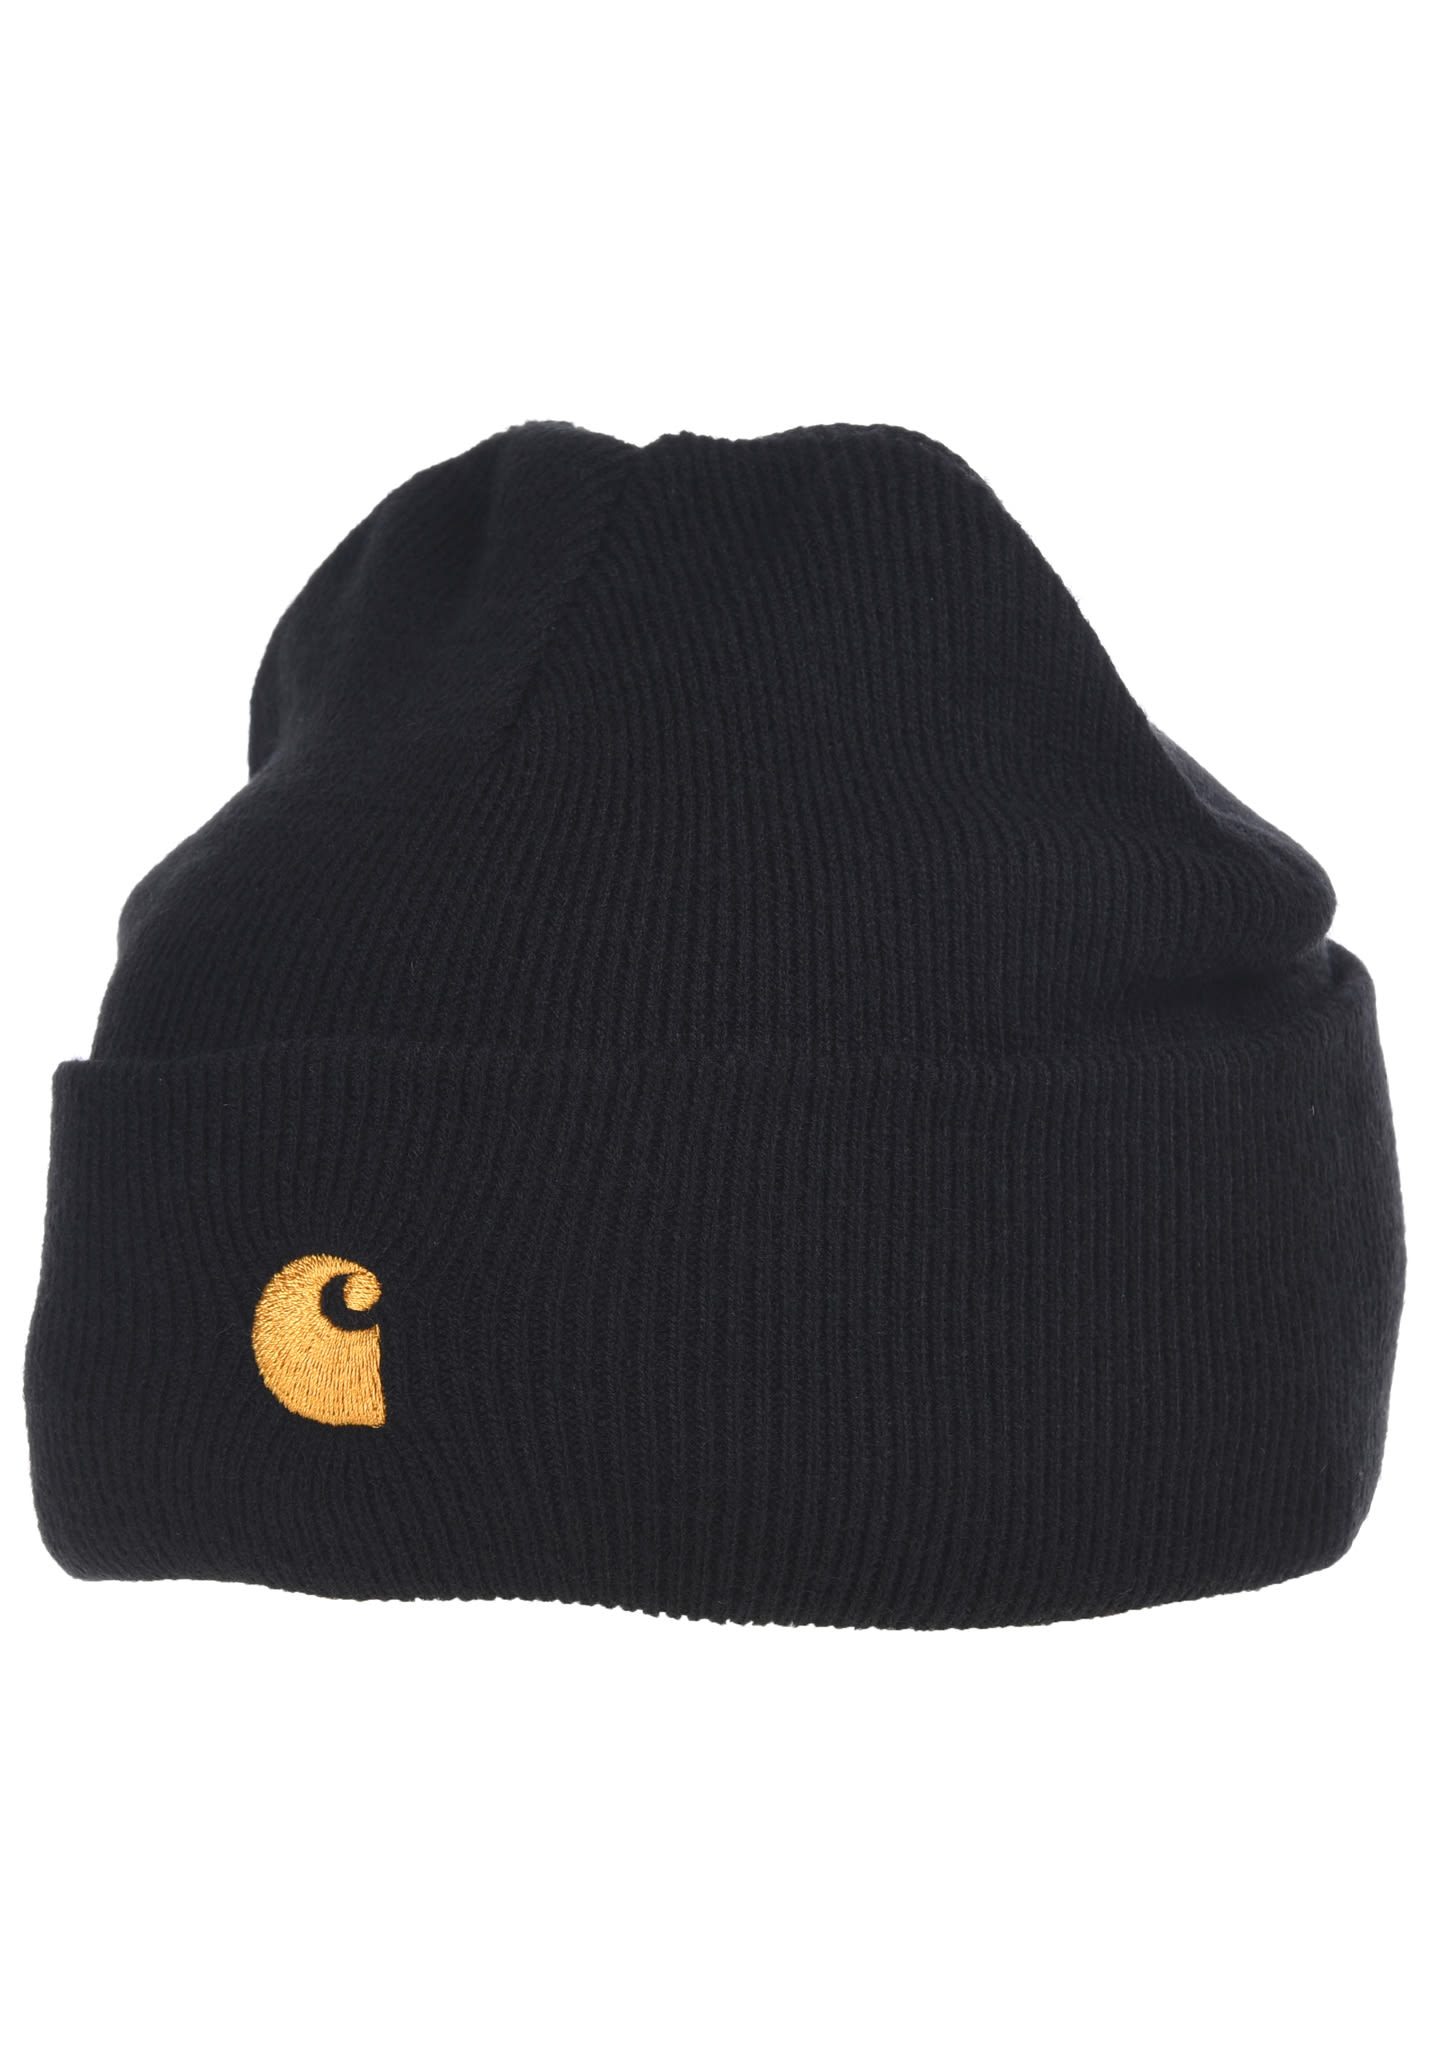 b9c75133b42e9 carhartt WIP Chase - Beanie - Black - Planet Sports